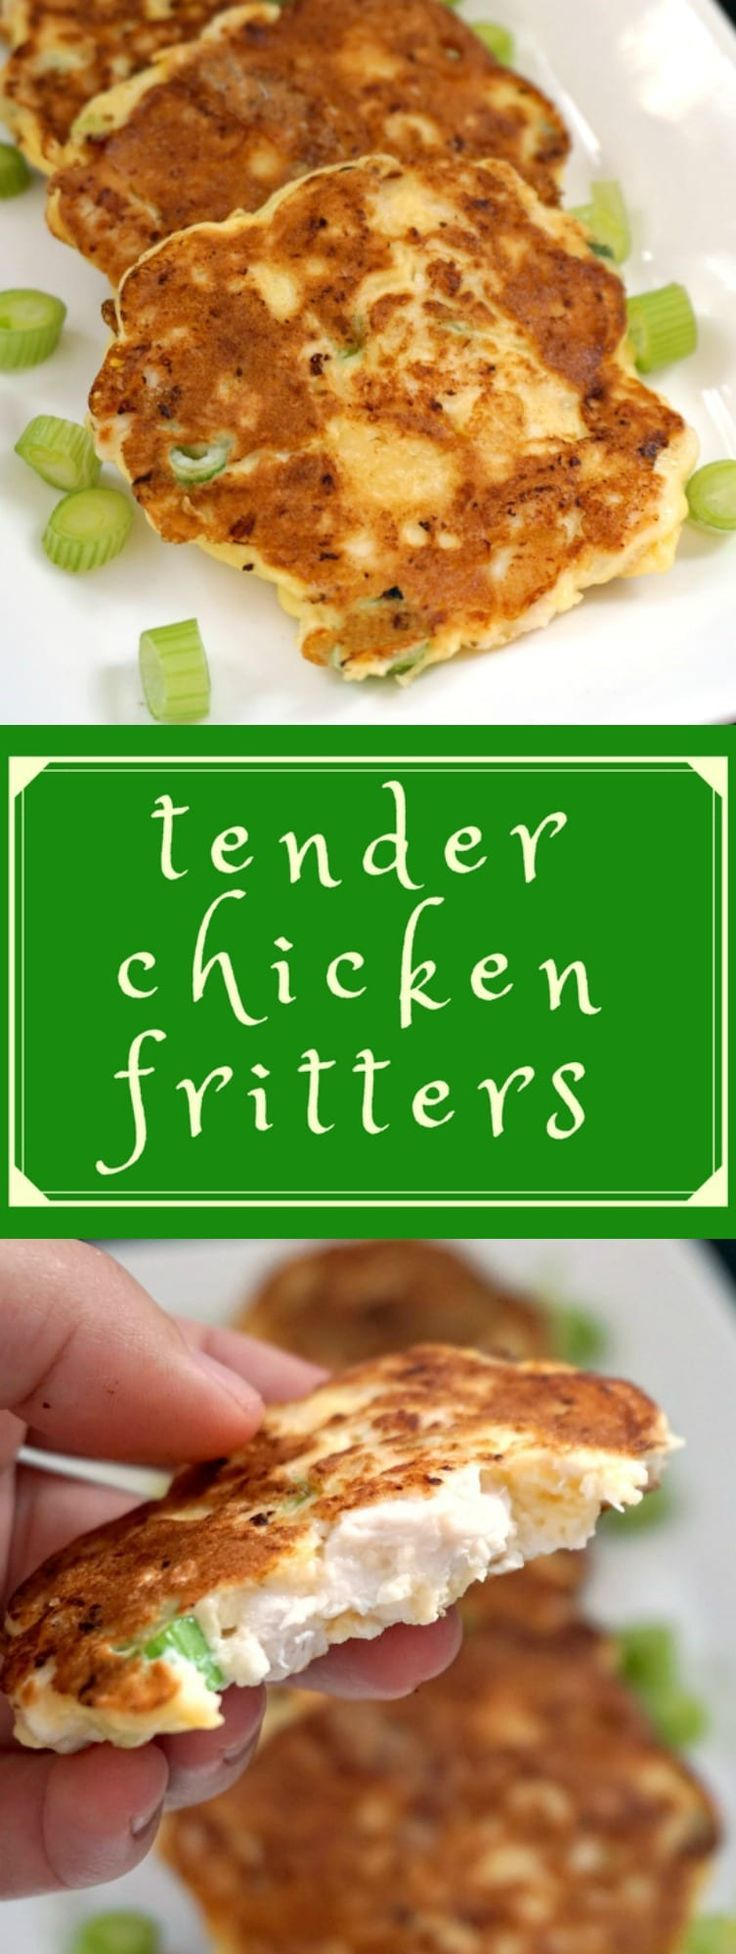 Tender Chicken Fritters Recipe, a delicious and healthy appetizer, totally kid friendly. Ready in well under 30 minutes, super easy to make. #chickenfritters , #30minuterecipe, #kidrecipes , #chickenappetizers